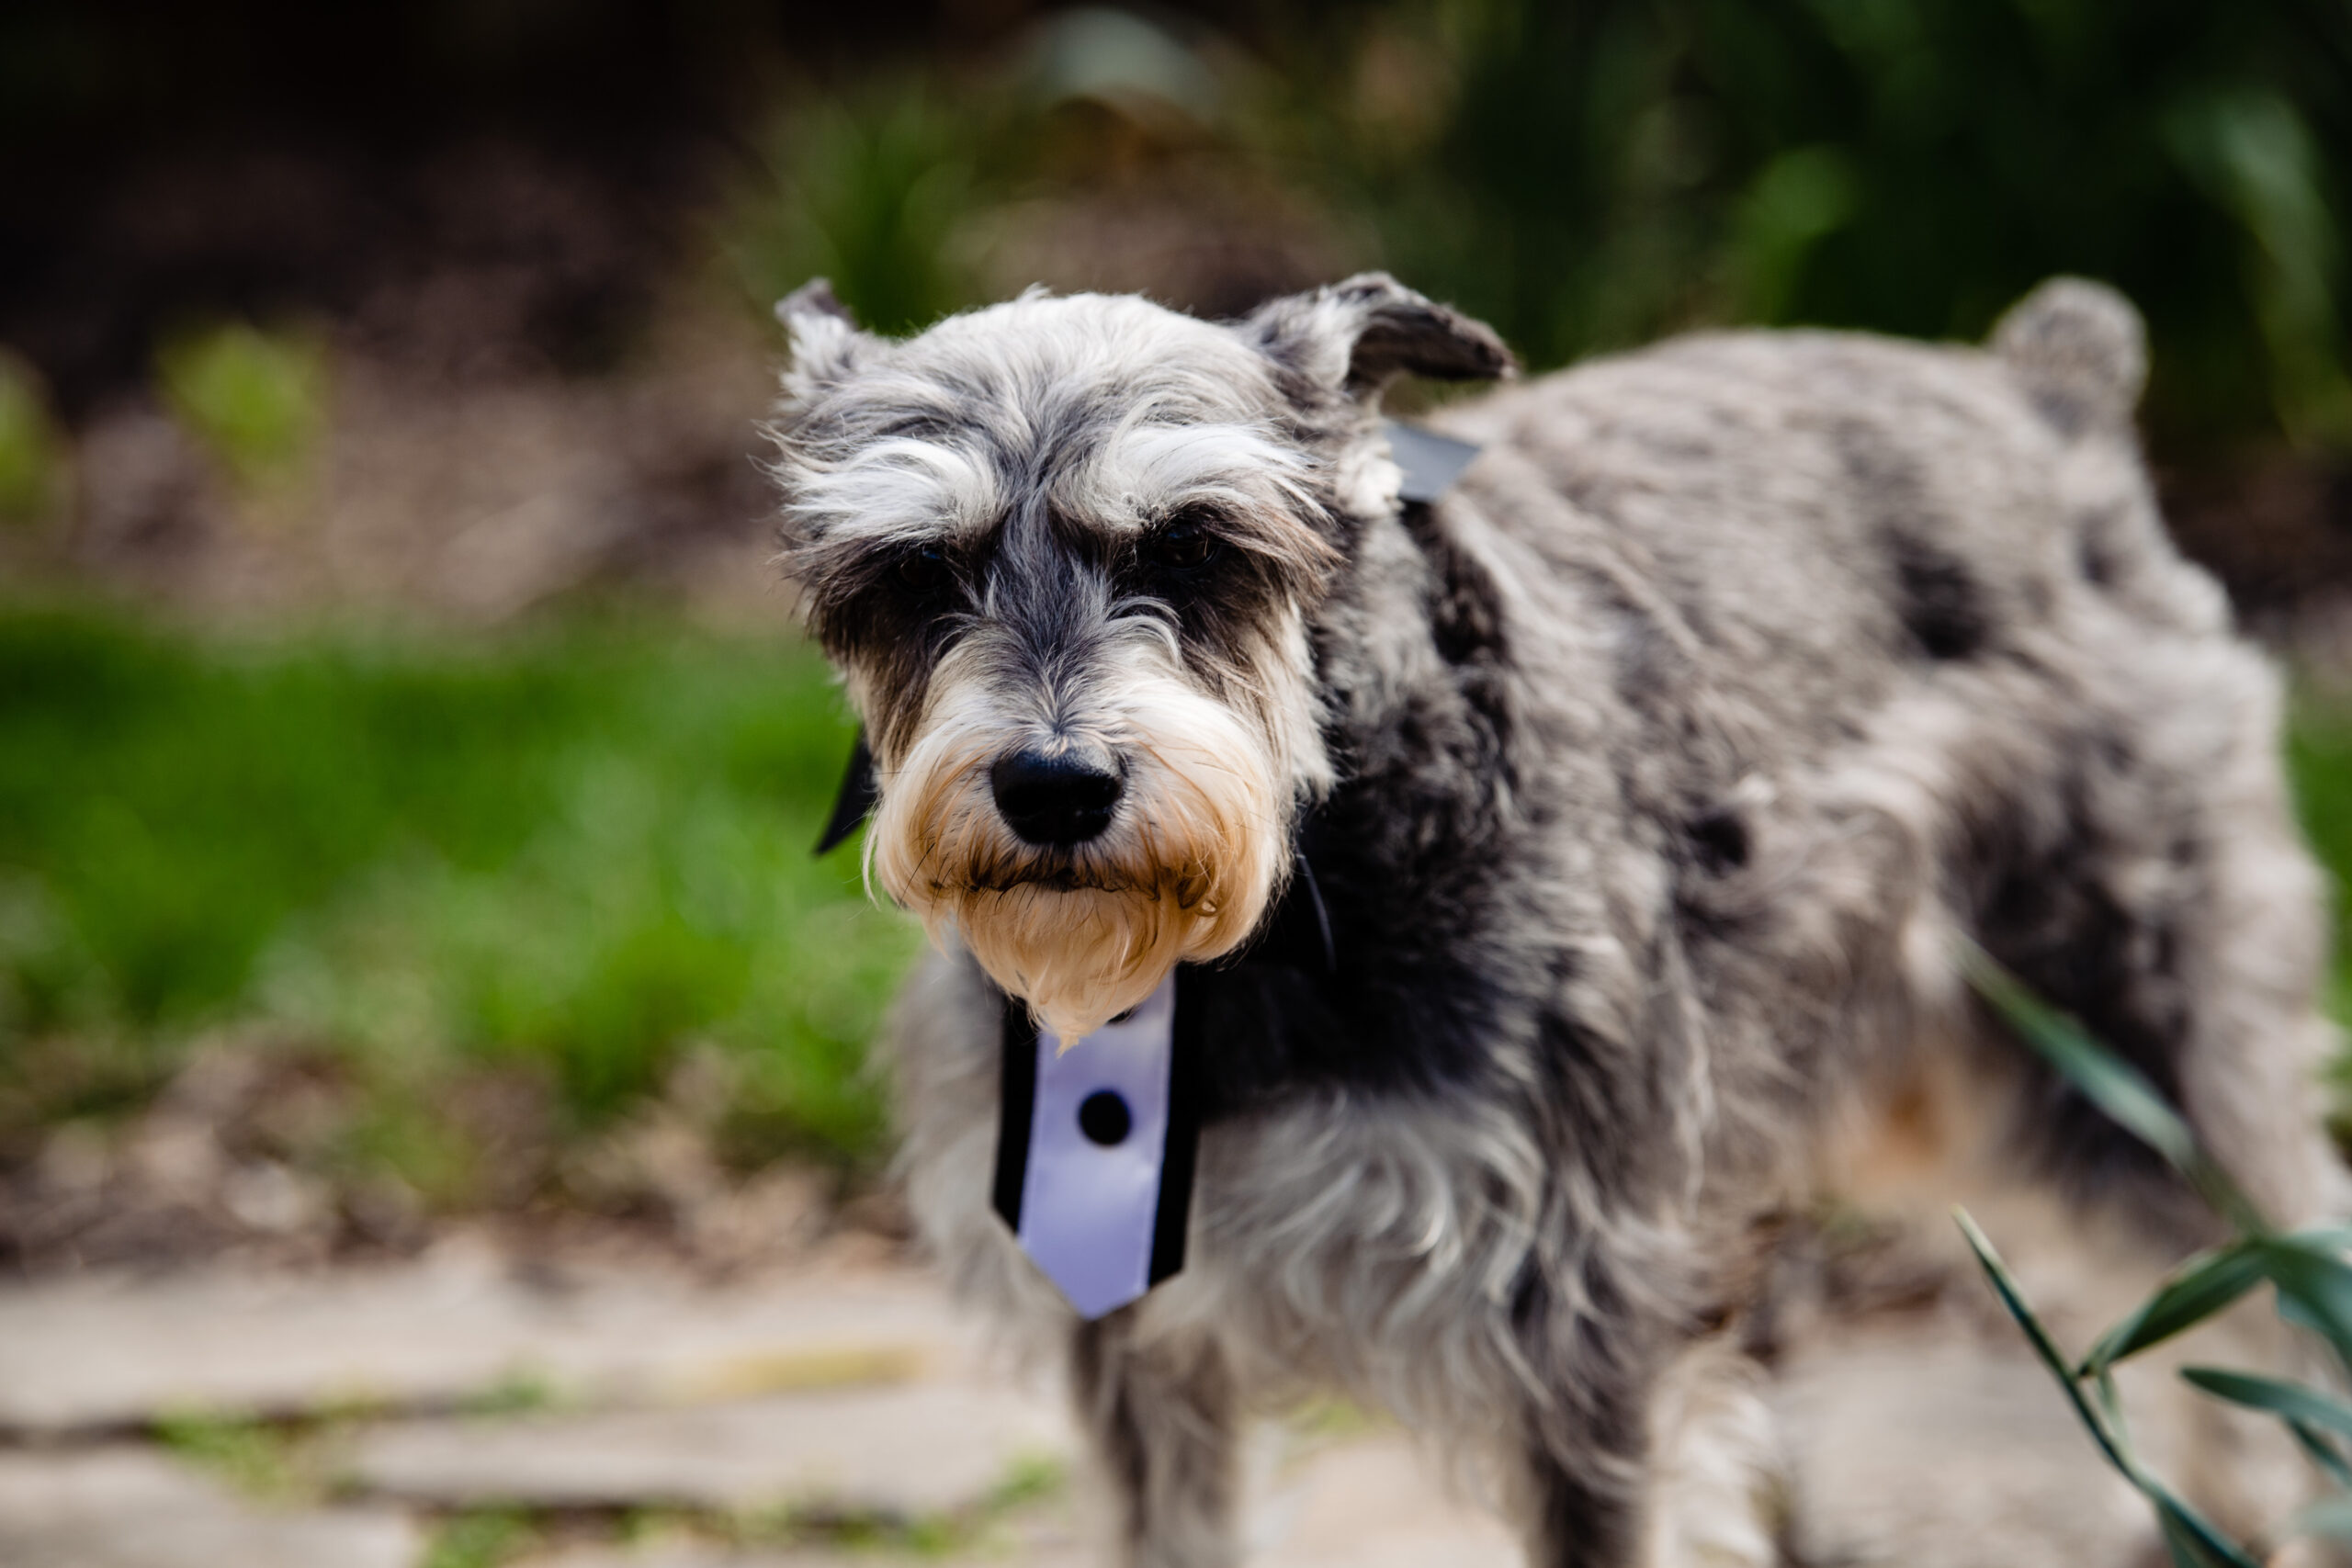 This little doggie is the ring bearer for the COVID ceremony in Columbus, Ohio.